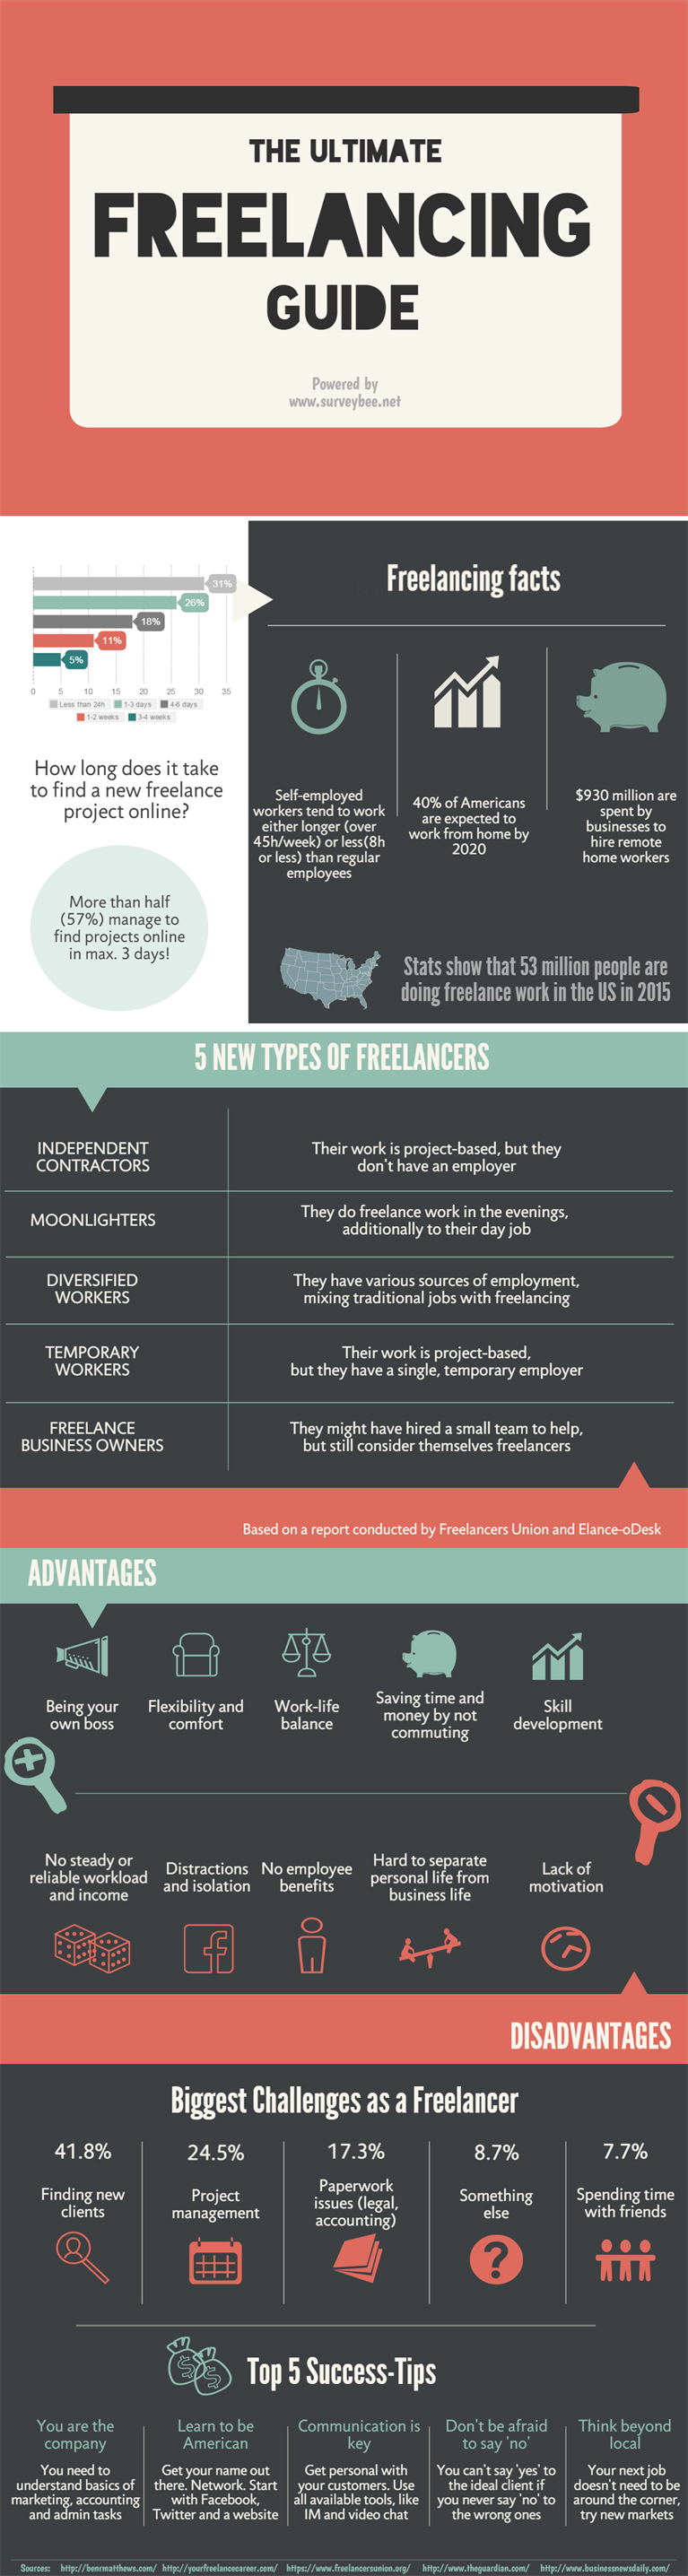 The_Ultimate_Freelancing_Guide_767x2872.jpg